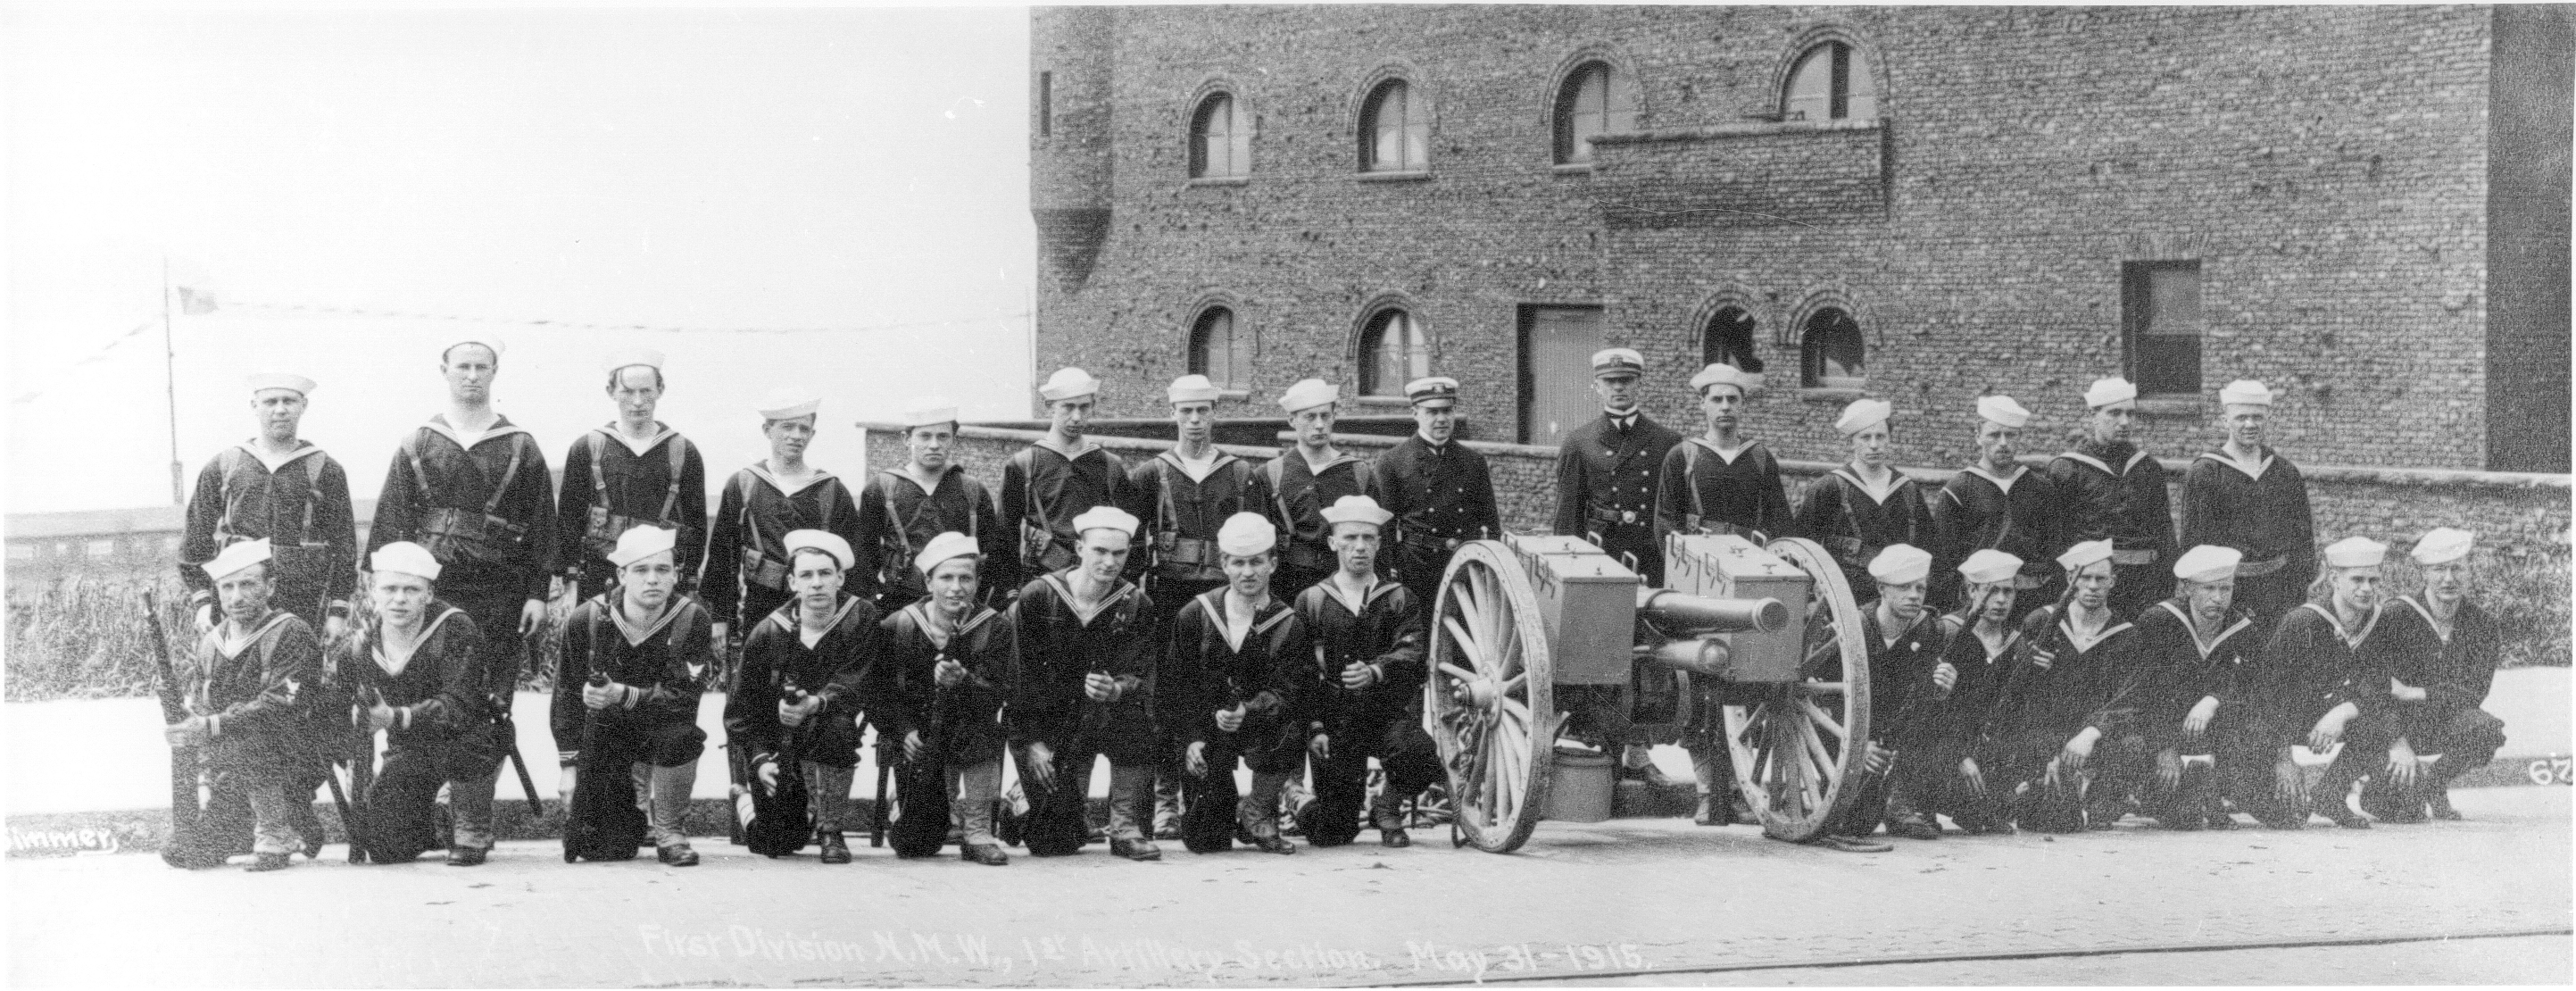 Naval Militia 1st Division, 1st Artillery, May 31,1915